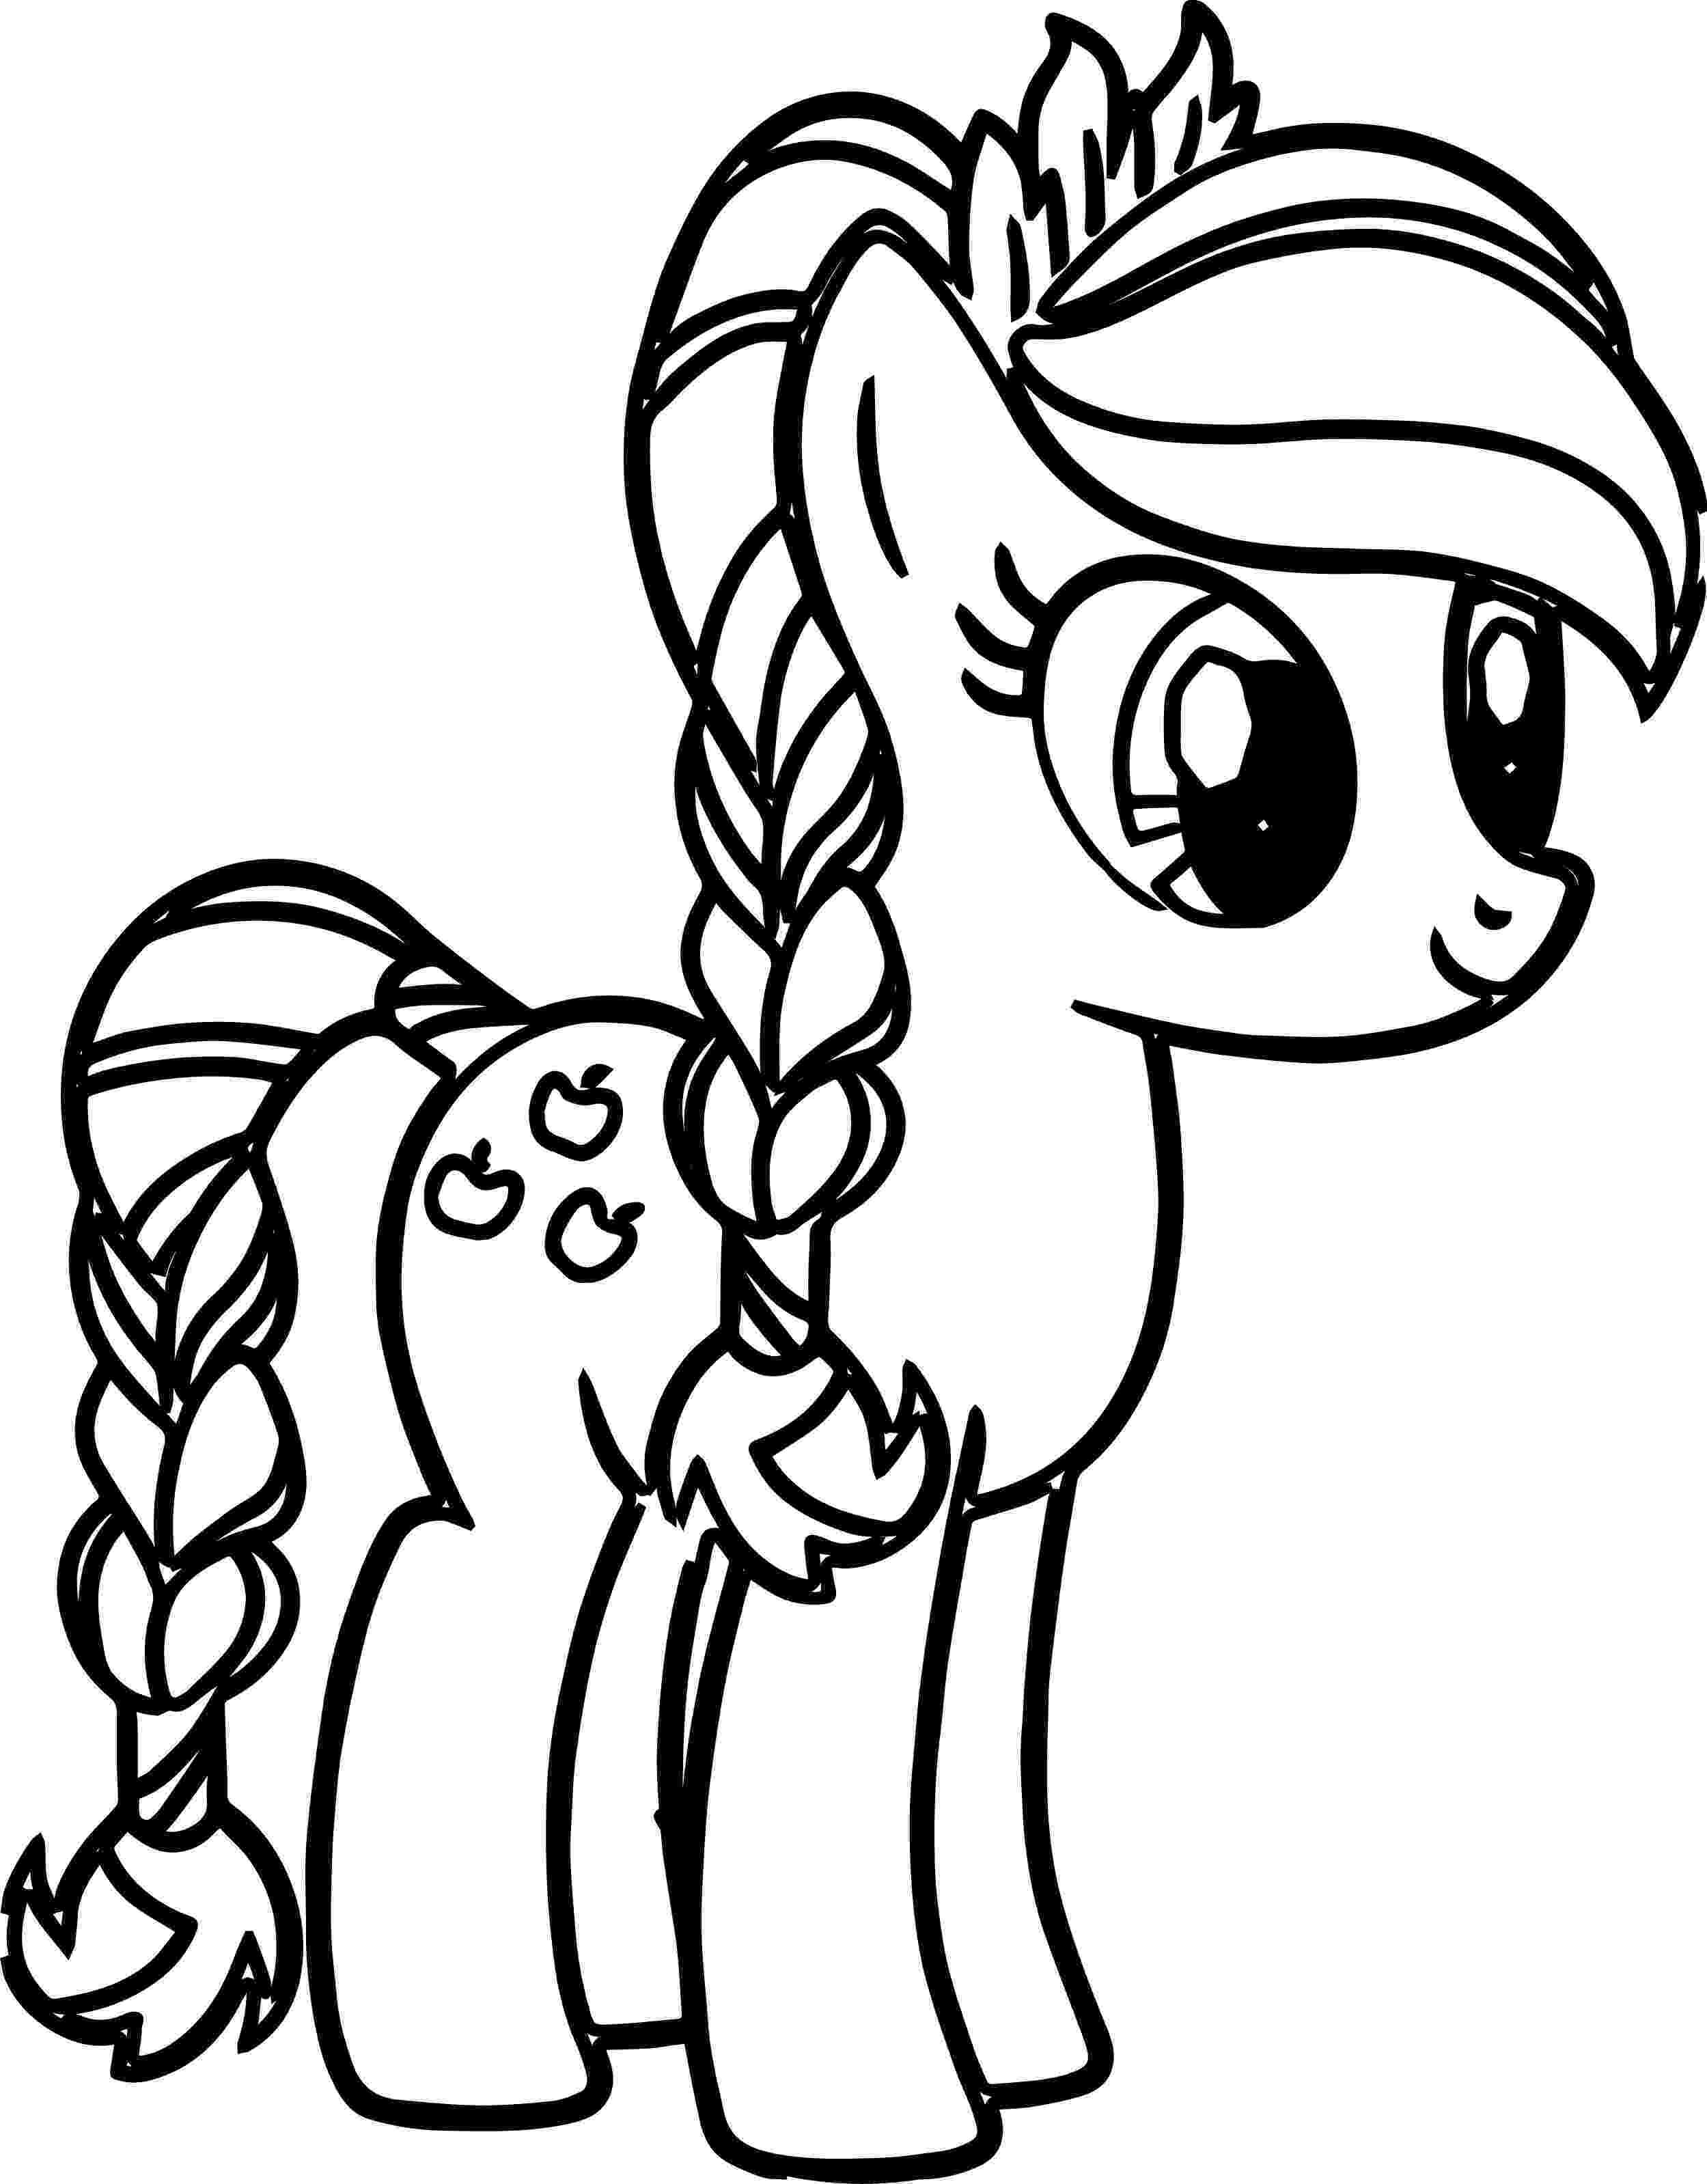 my little pony colors my little pony the movie coloring pages to download and little colors pony my